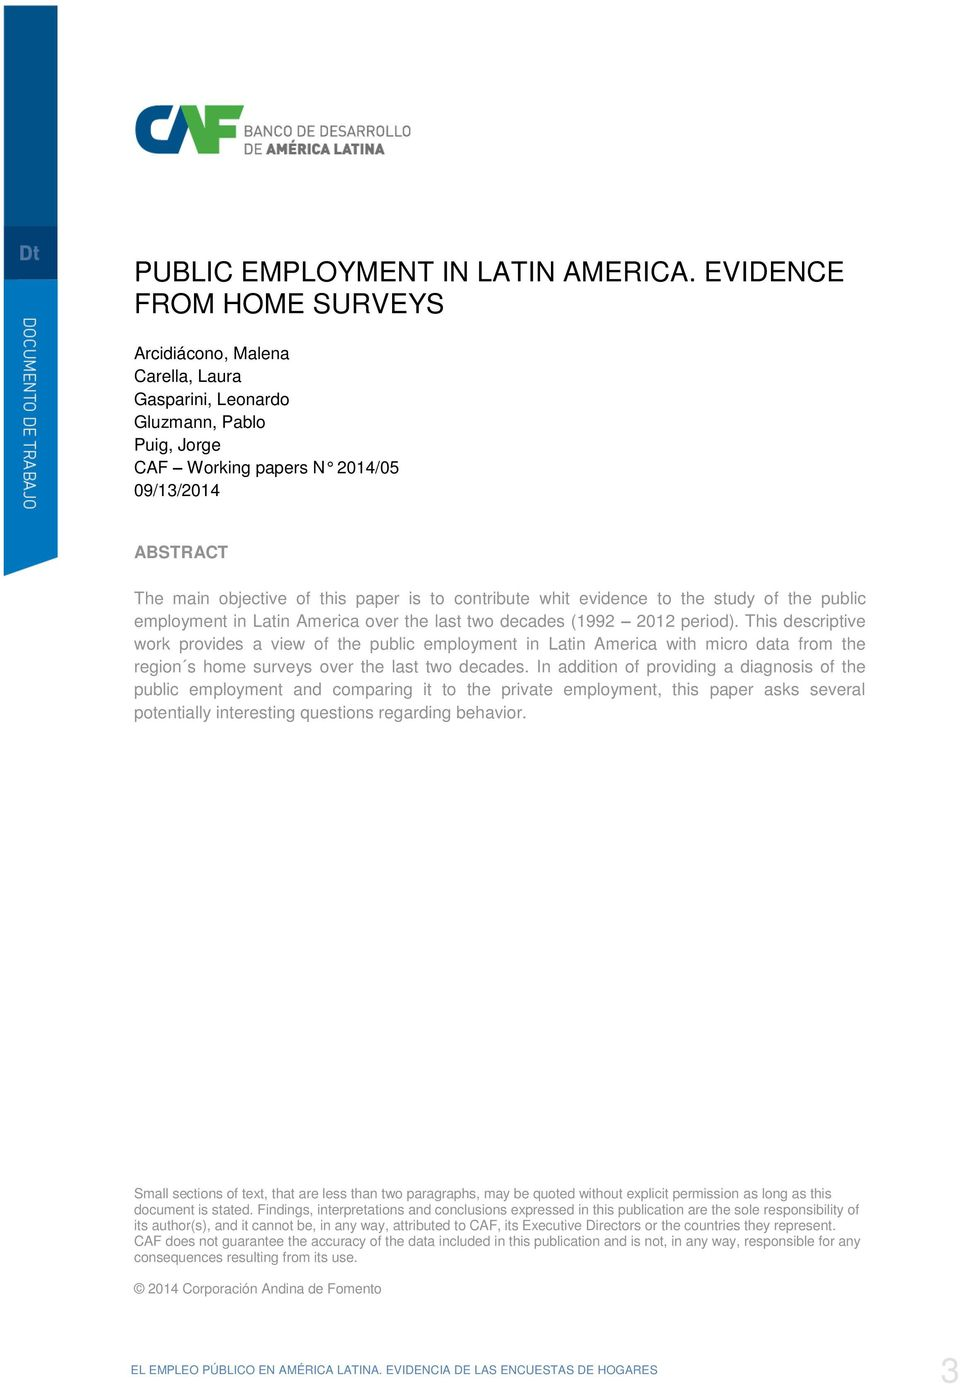 contribute whit evidence to the study of the public employment in Latin America over the last two decades (199 01 period).